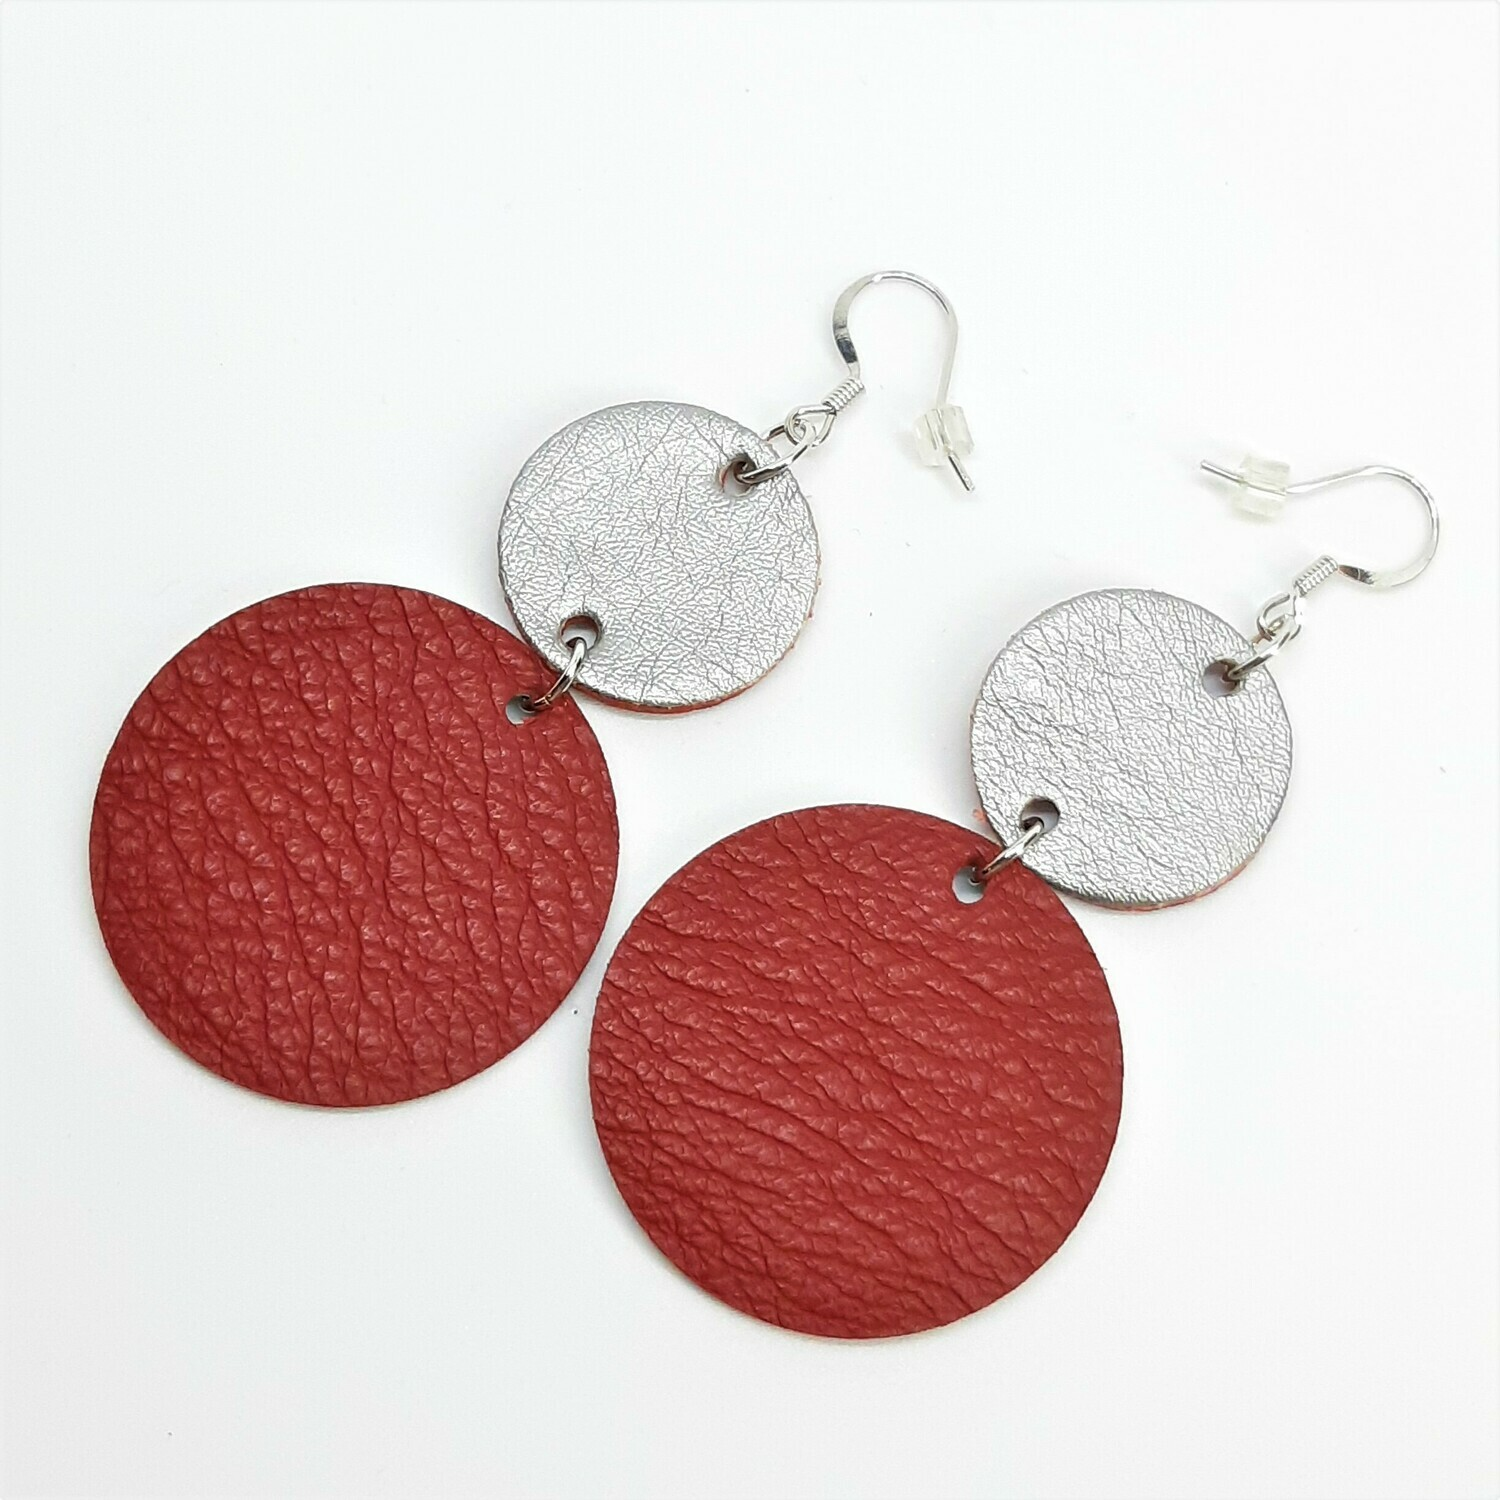 Statement Oorbellen duo color - rood & zilver